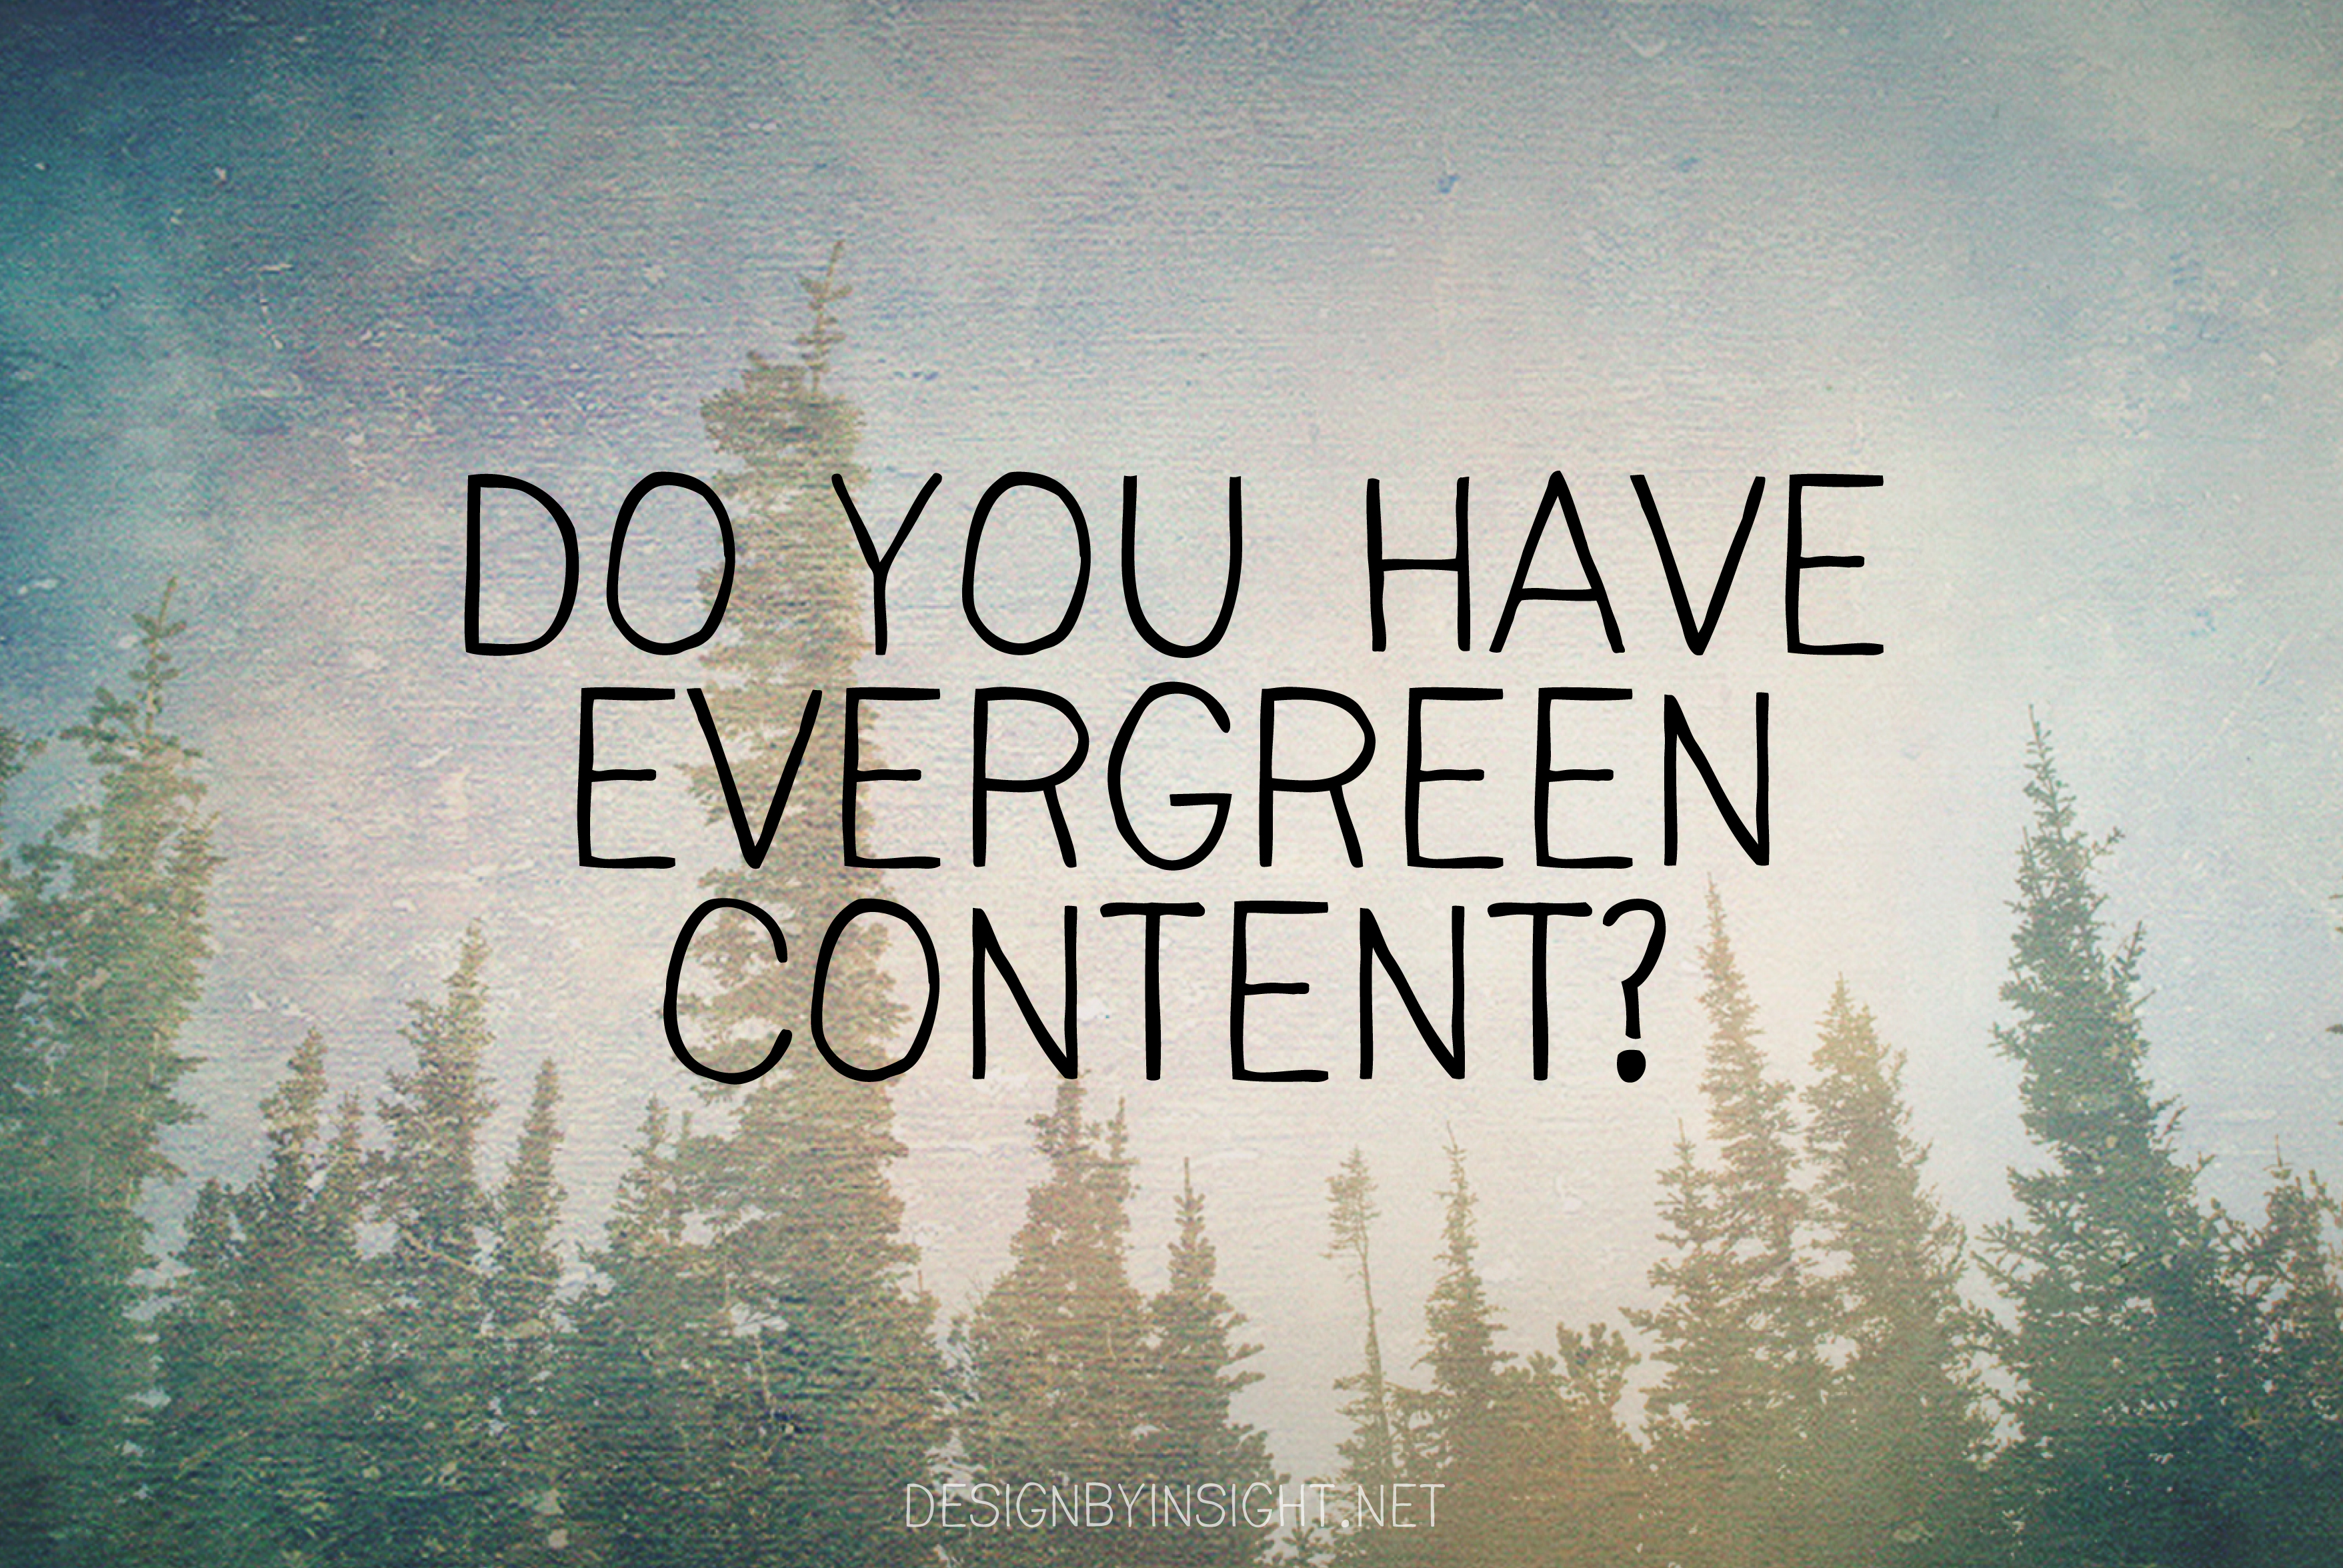 do you have evergreen content?